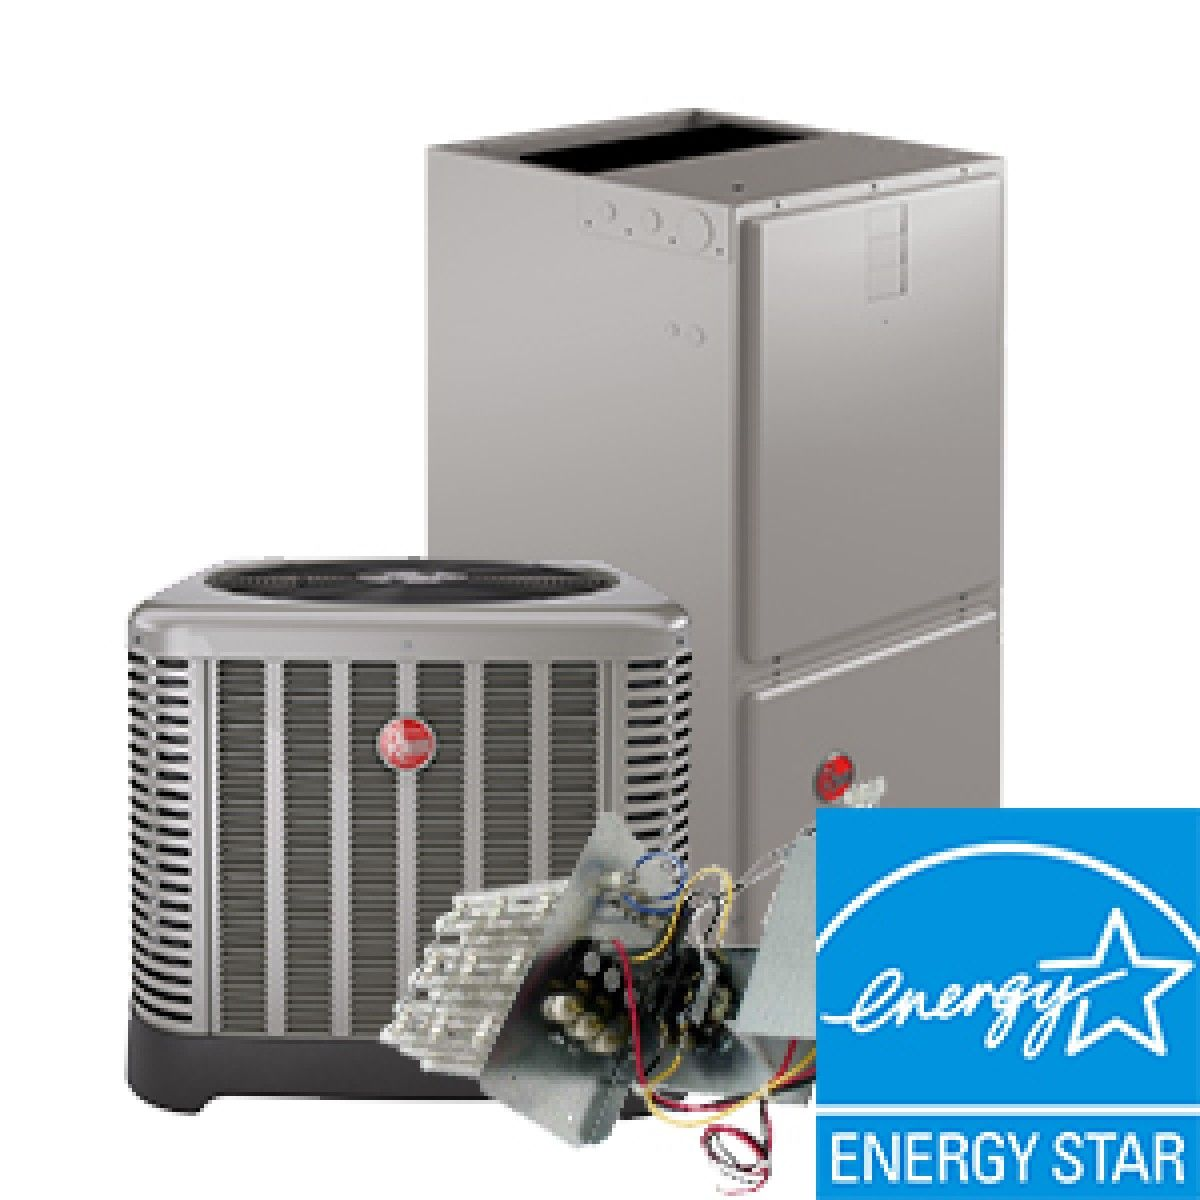 Rheem 5 Ton 16 Seer Electric Heat System Energy Star